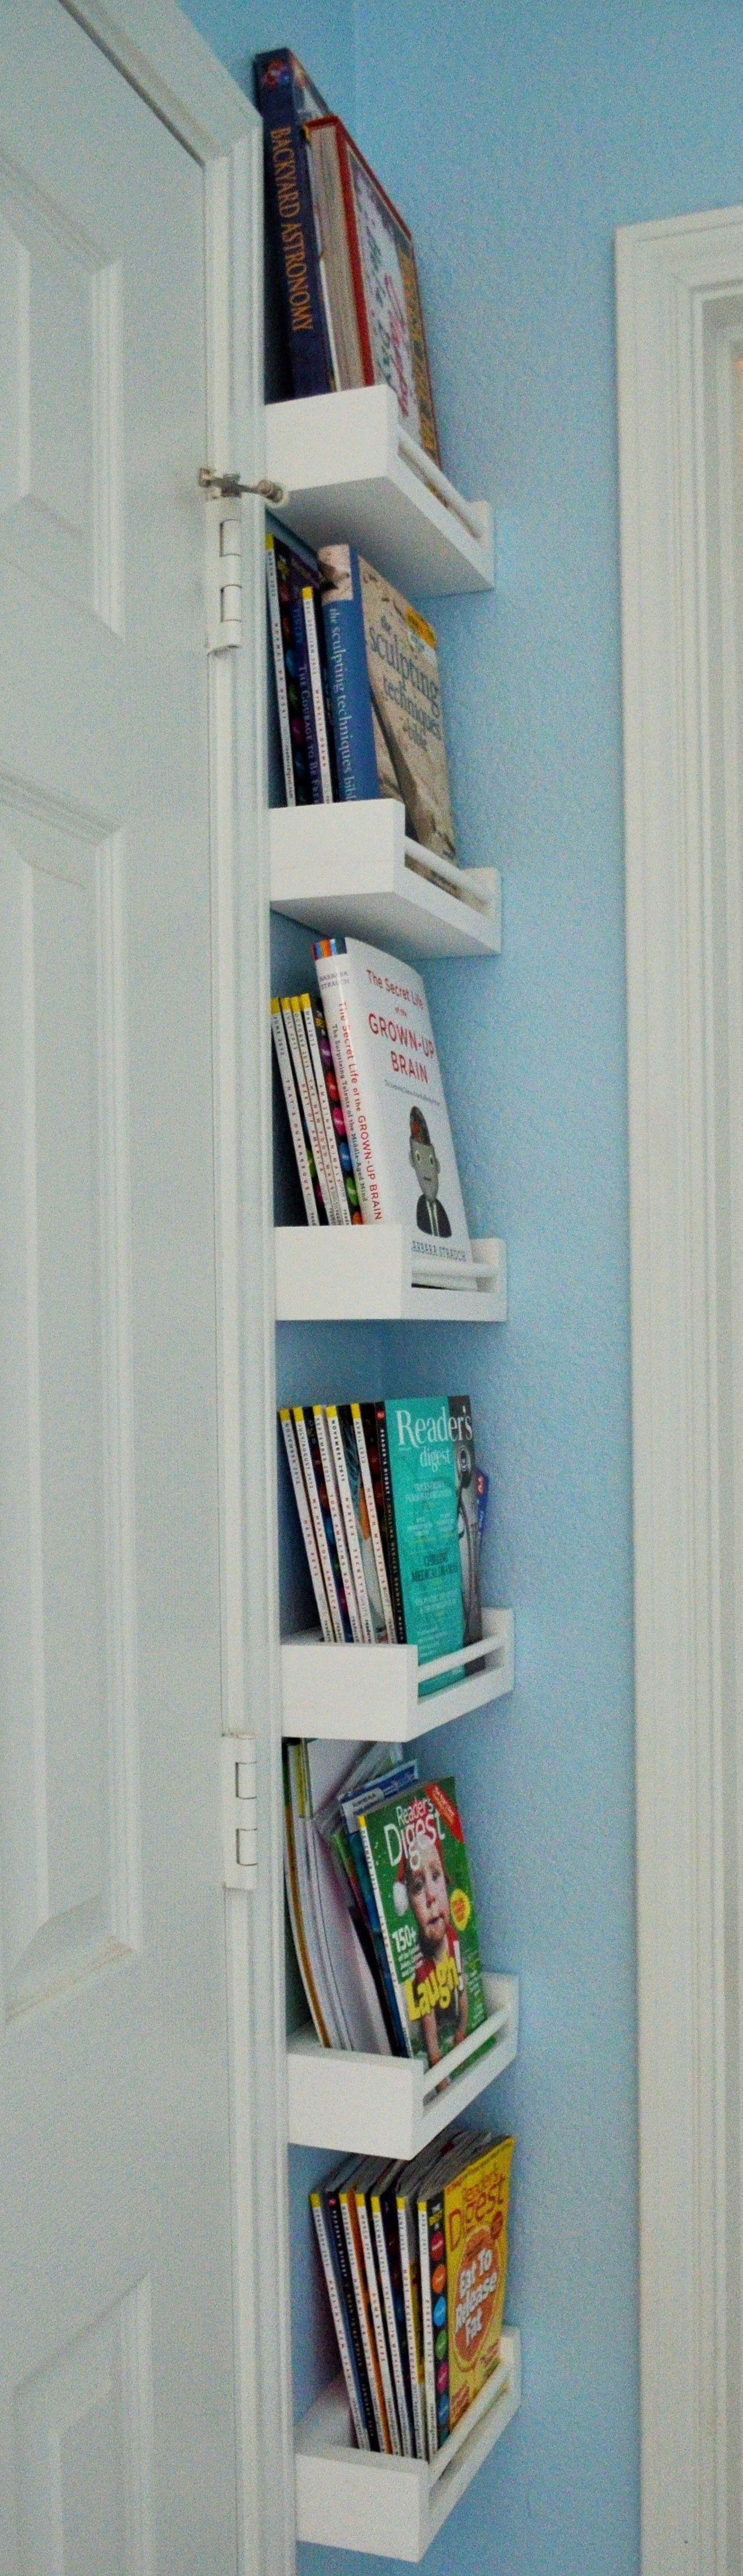 Small Corner Bookshelves Work Great For Behind Door In Playroom